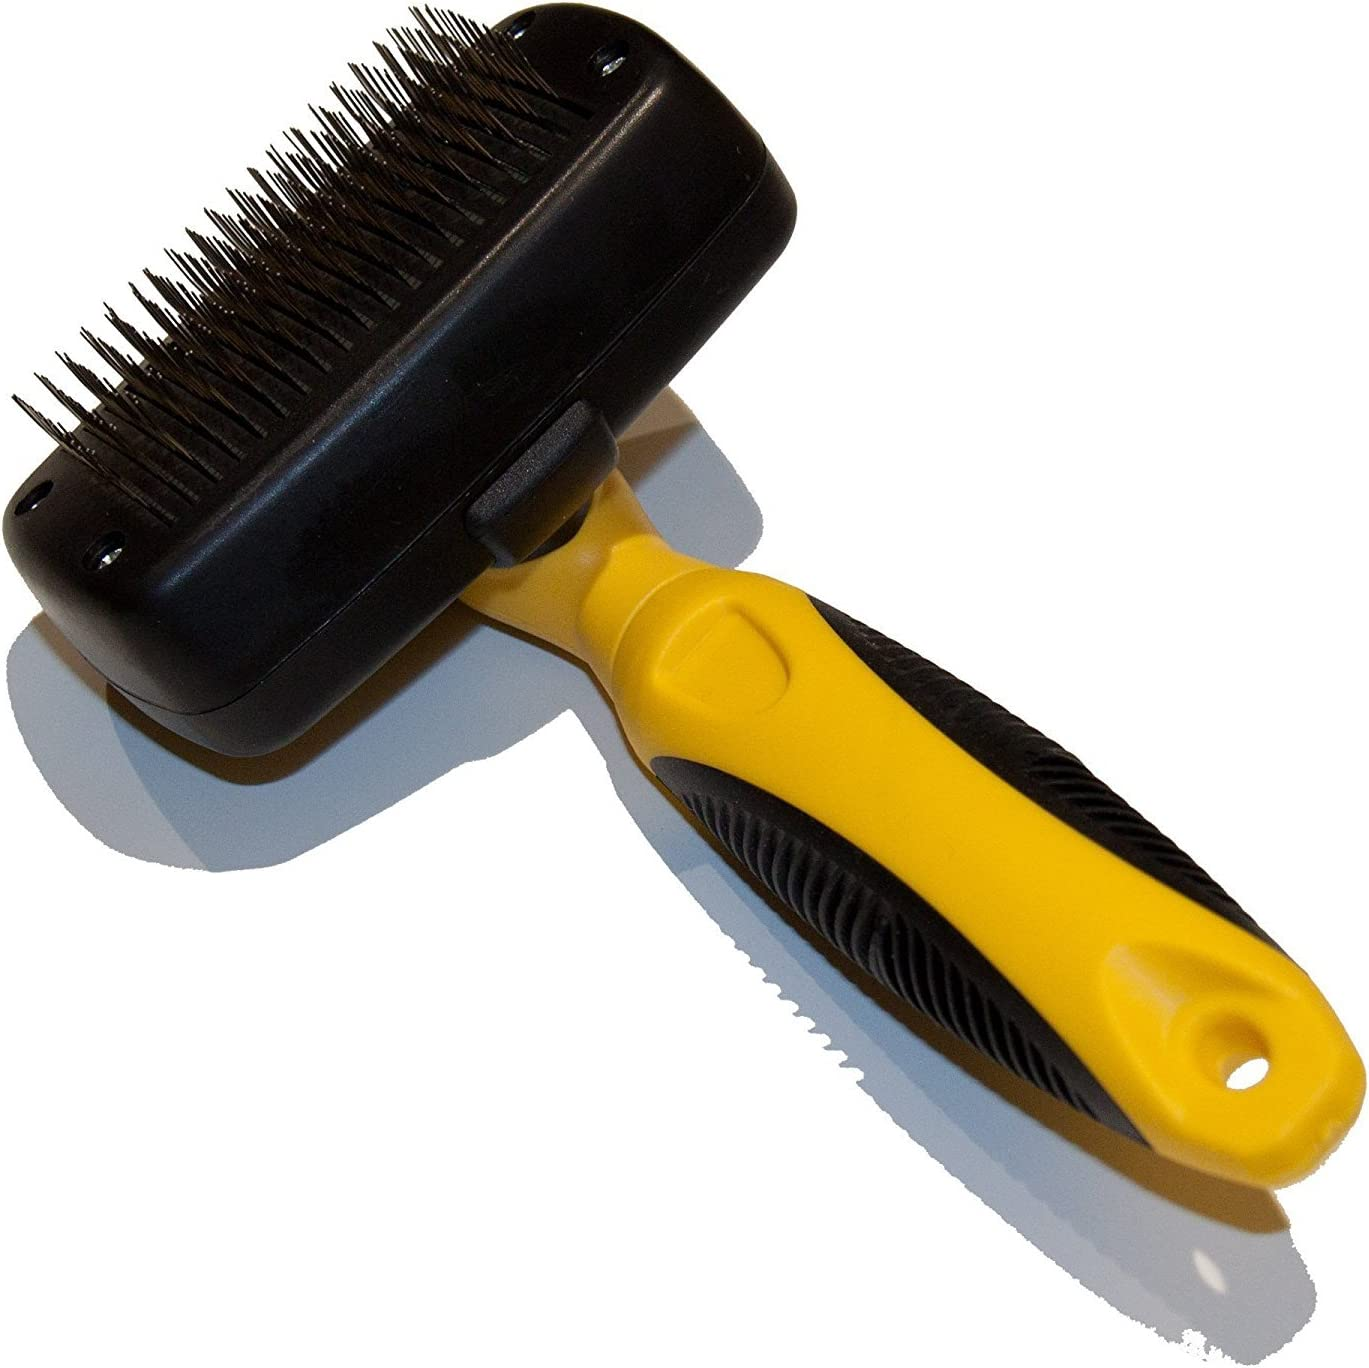 Best Grooming tool to Remove Detritus /& Undercoat Cats Rabbits Pet Republique /® Self-Cleaning Dog Slicker Brush for Dogs Any Long Haired Breed Pets